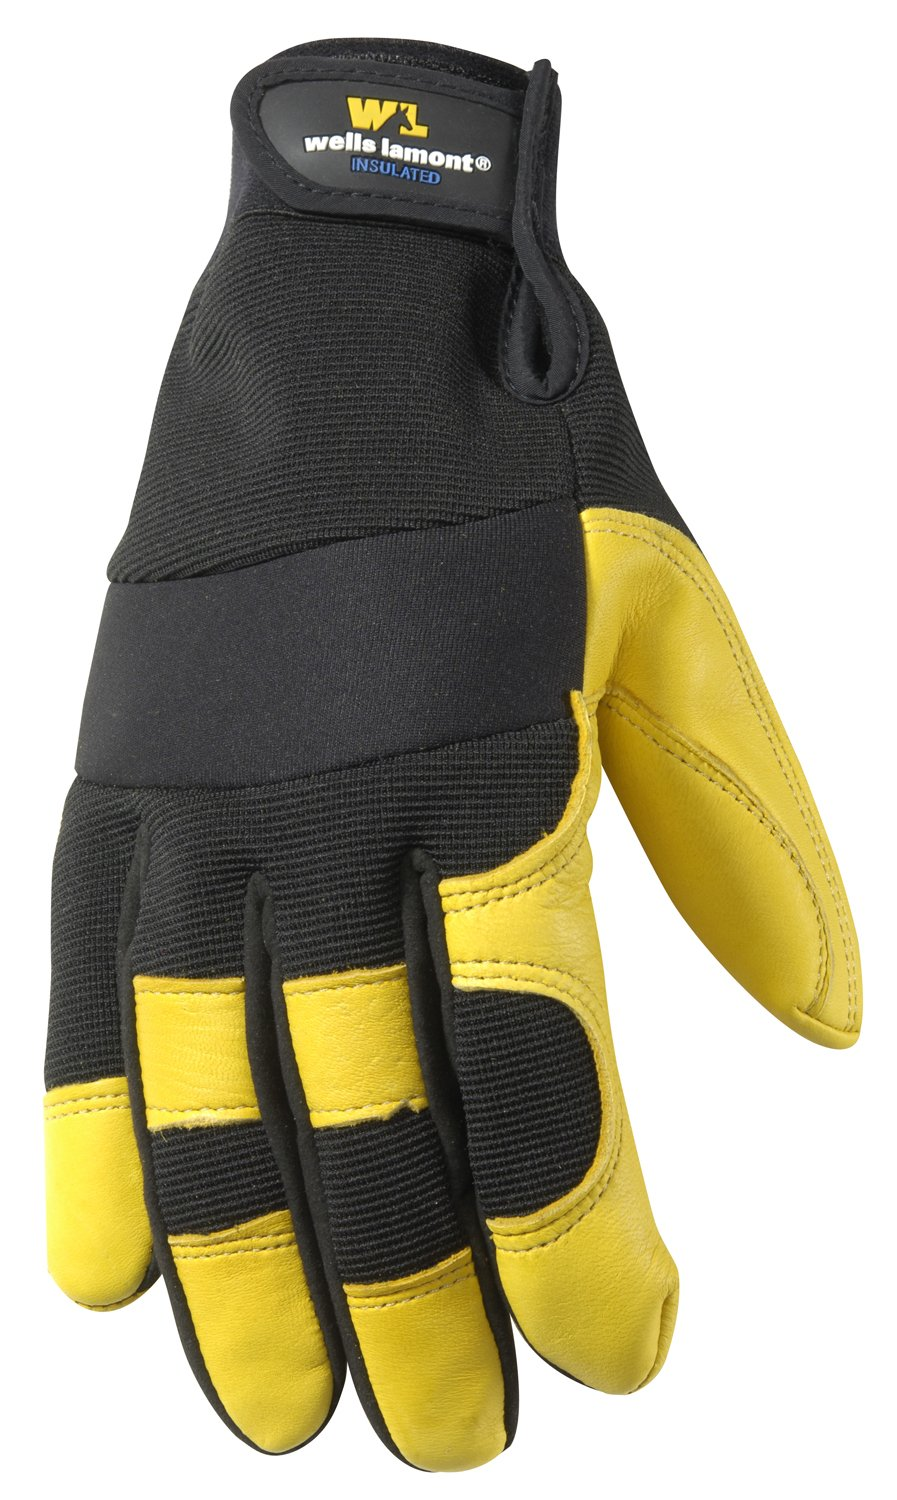 Wells Lamont Leather Work Gloves, Insulated Grain Deerskin